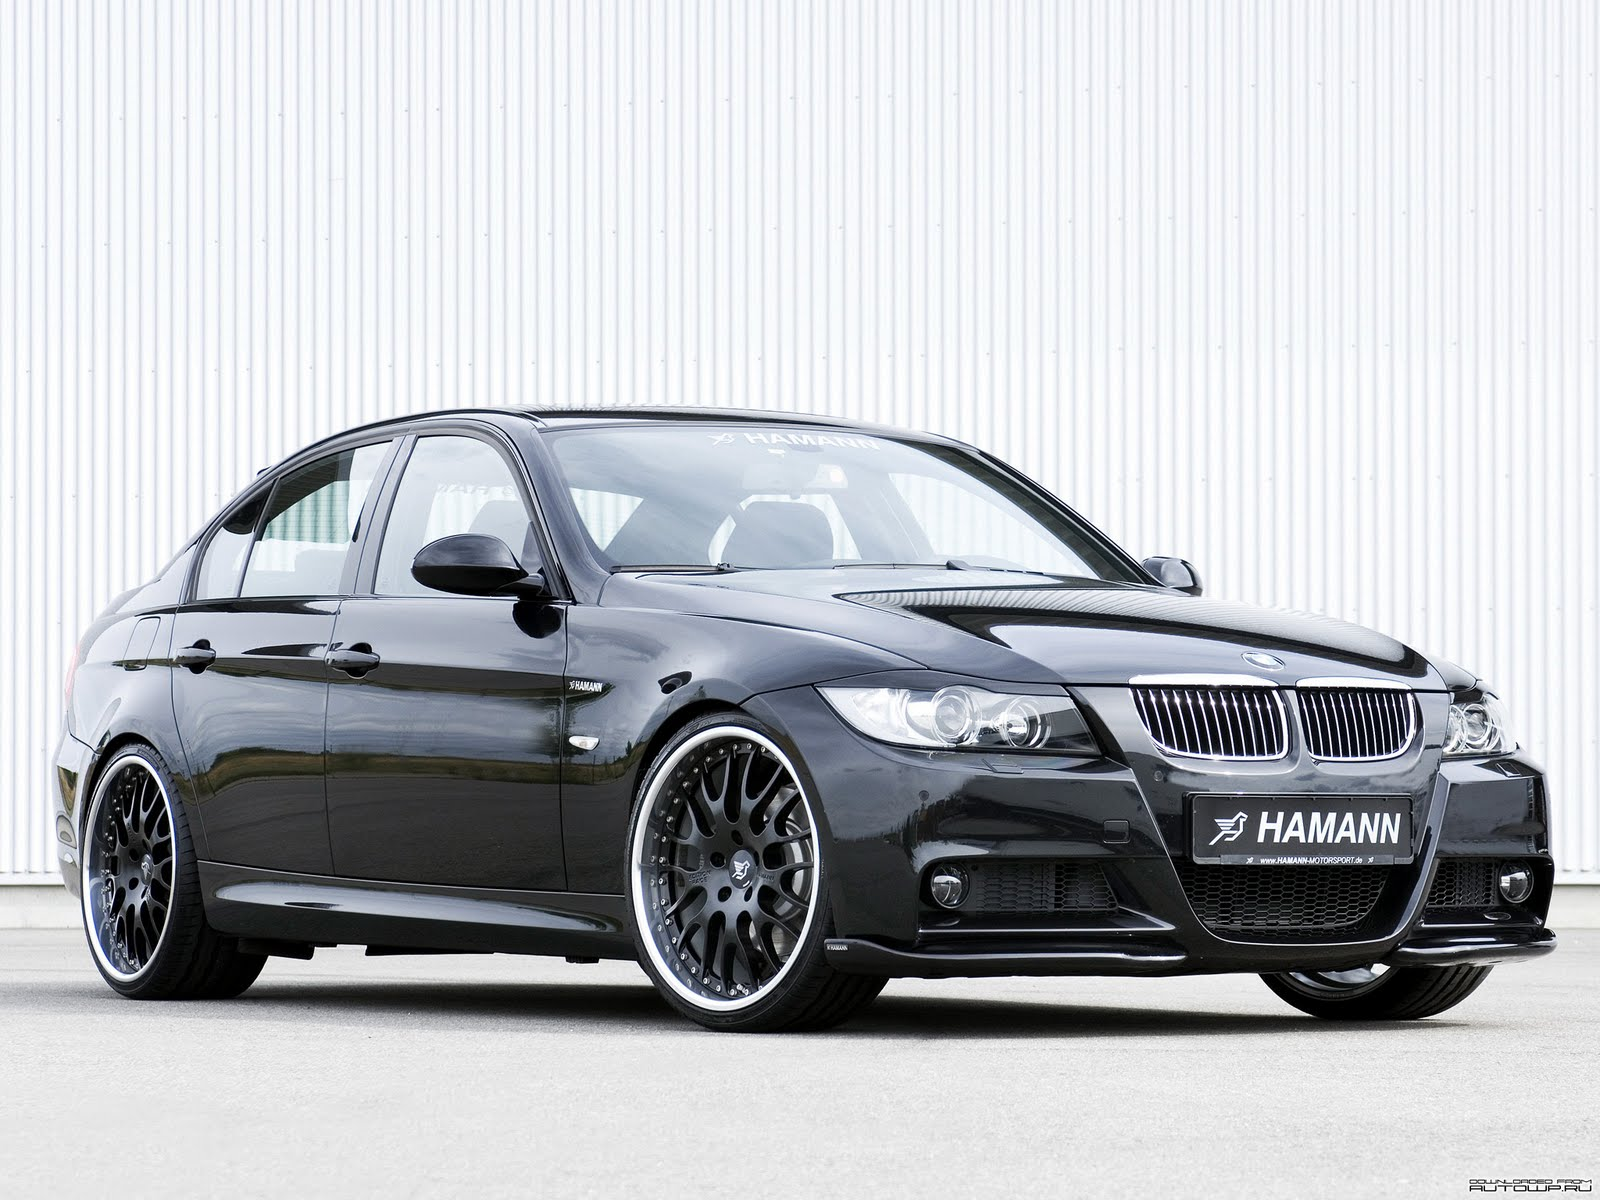 bmw e90 3 series hamann. Black Bedroom Furniture Sets. Home Design Ideas